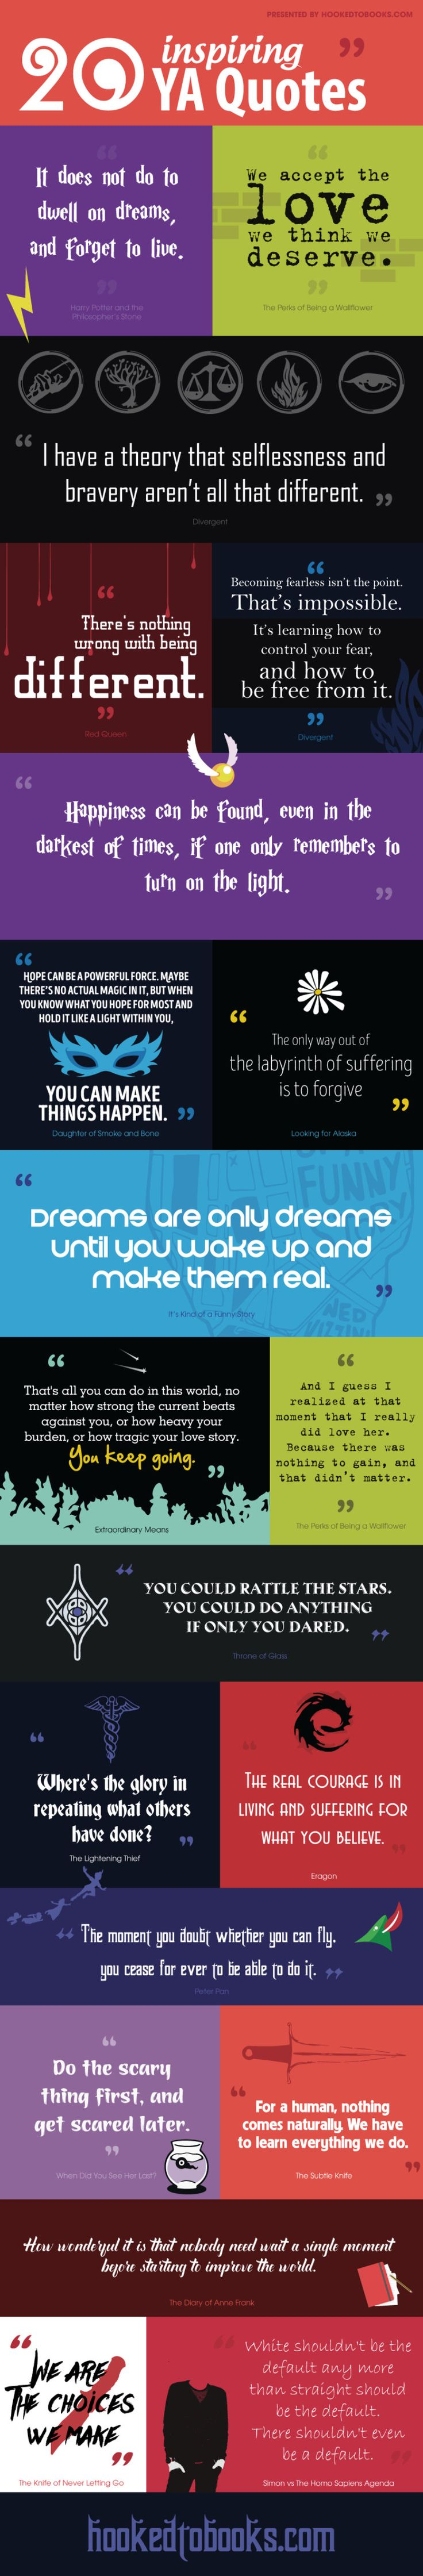 A new infographic from a YA book review blog Hooked to Books lists 20 motivational quotes from young adult novels – the…